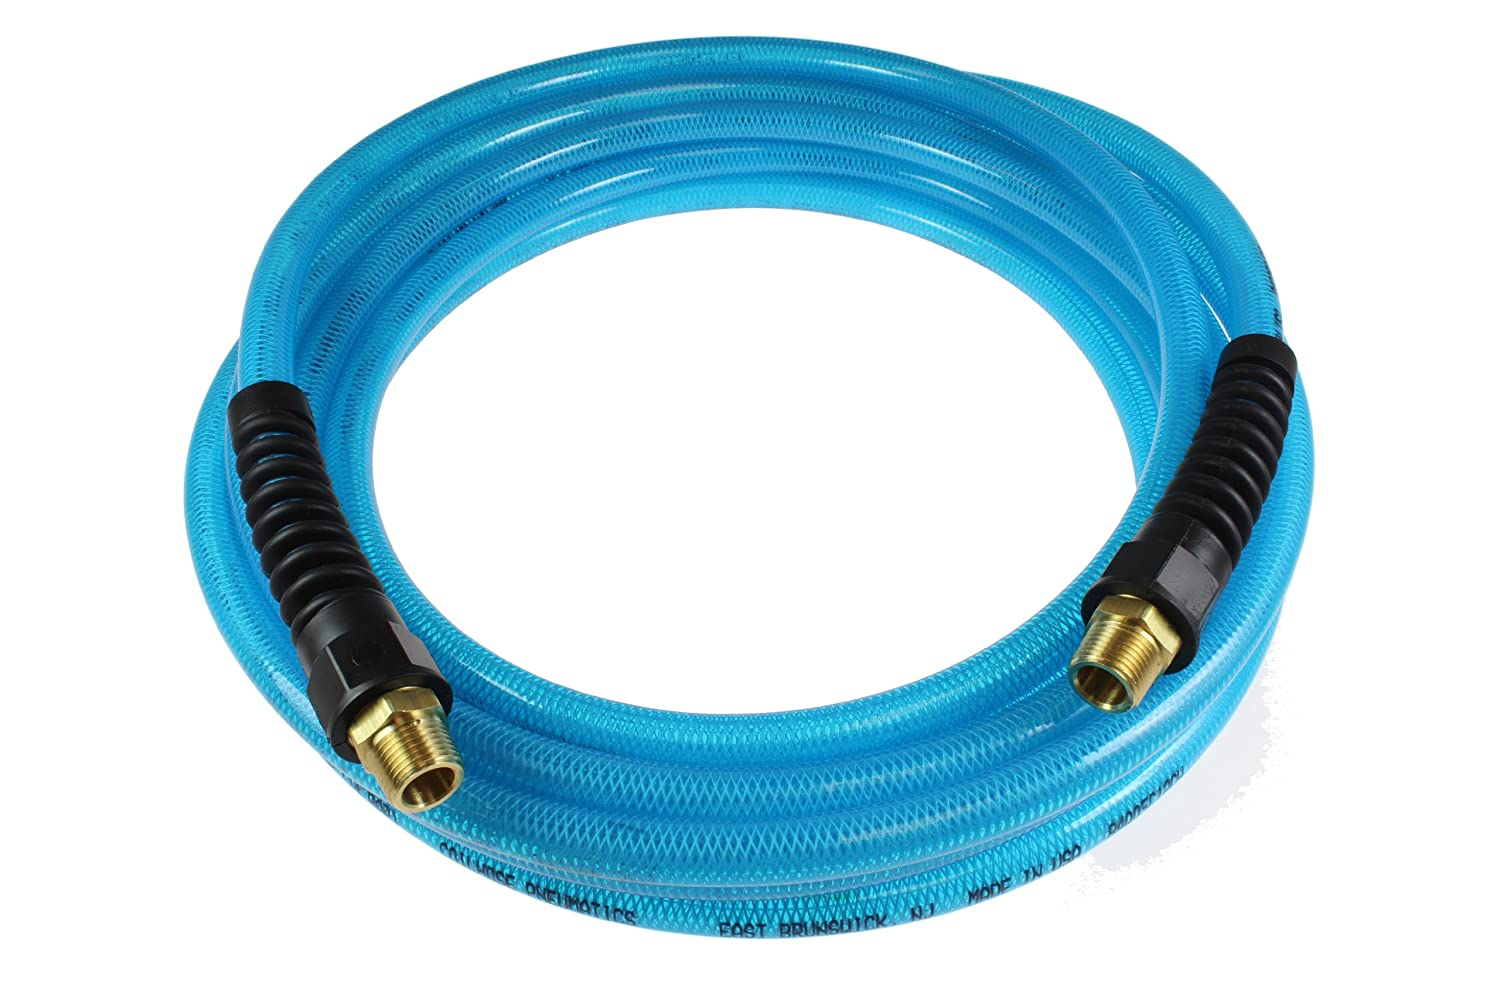 Coilhose Pneumatics PFE60254T Flexeel Reinforced Polyurethane Air Hose, 3/8-Inch ID, 25-Foot Length with (2) 1/4-Inch MPT Reusable Strain Relief Fittings, Transparent Blue